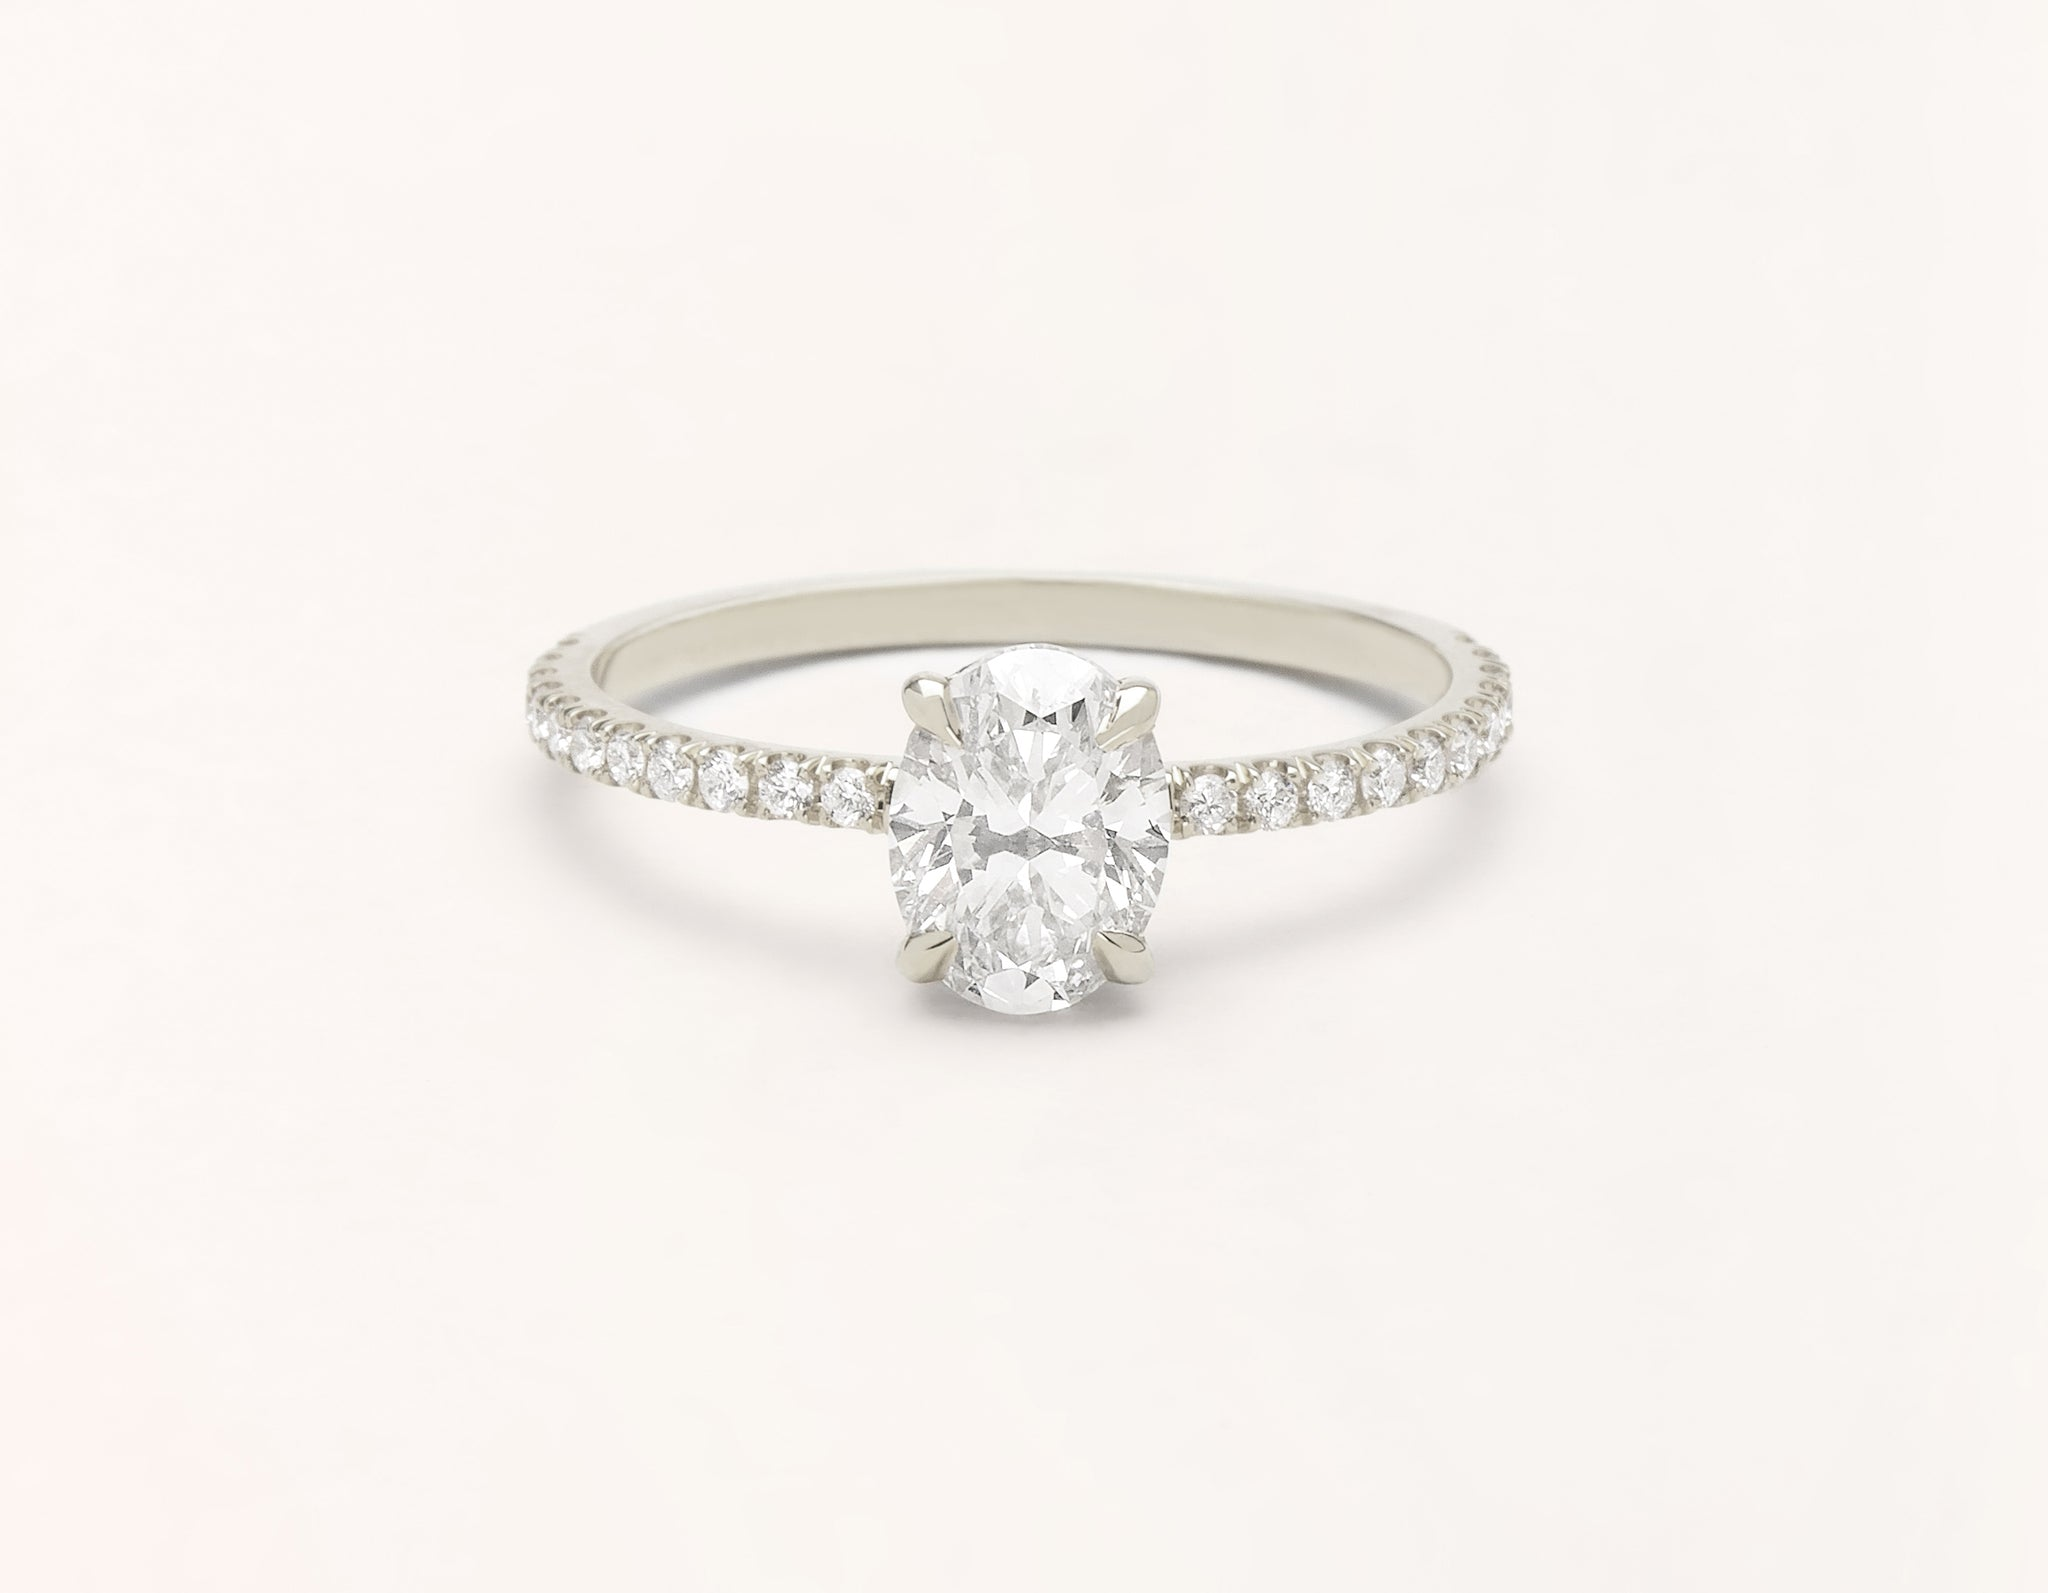 Minimalist 18k solid white gold The Oval pave engagement ring 1 ct diamond Vrai and Oro